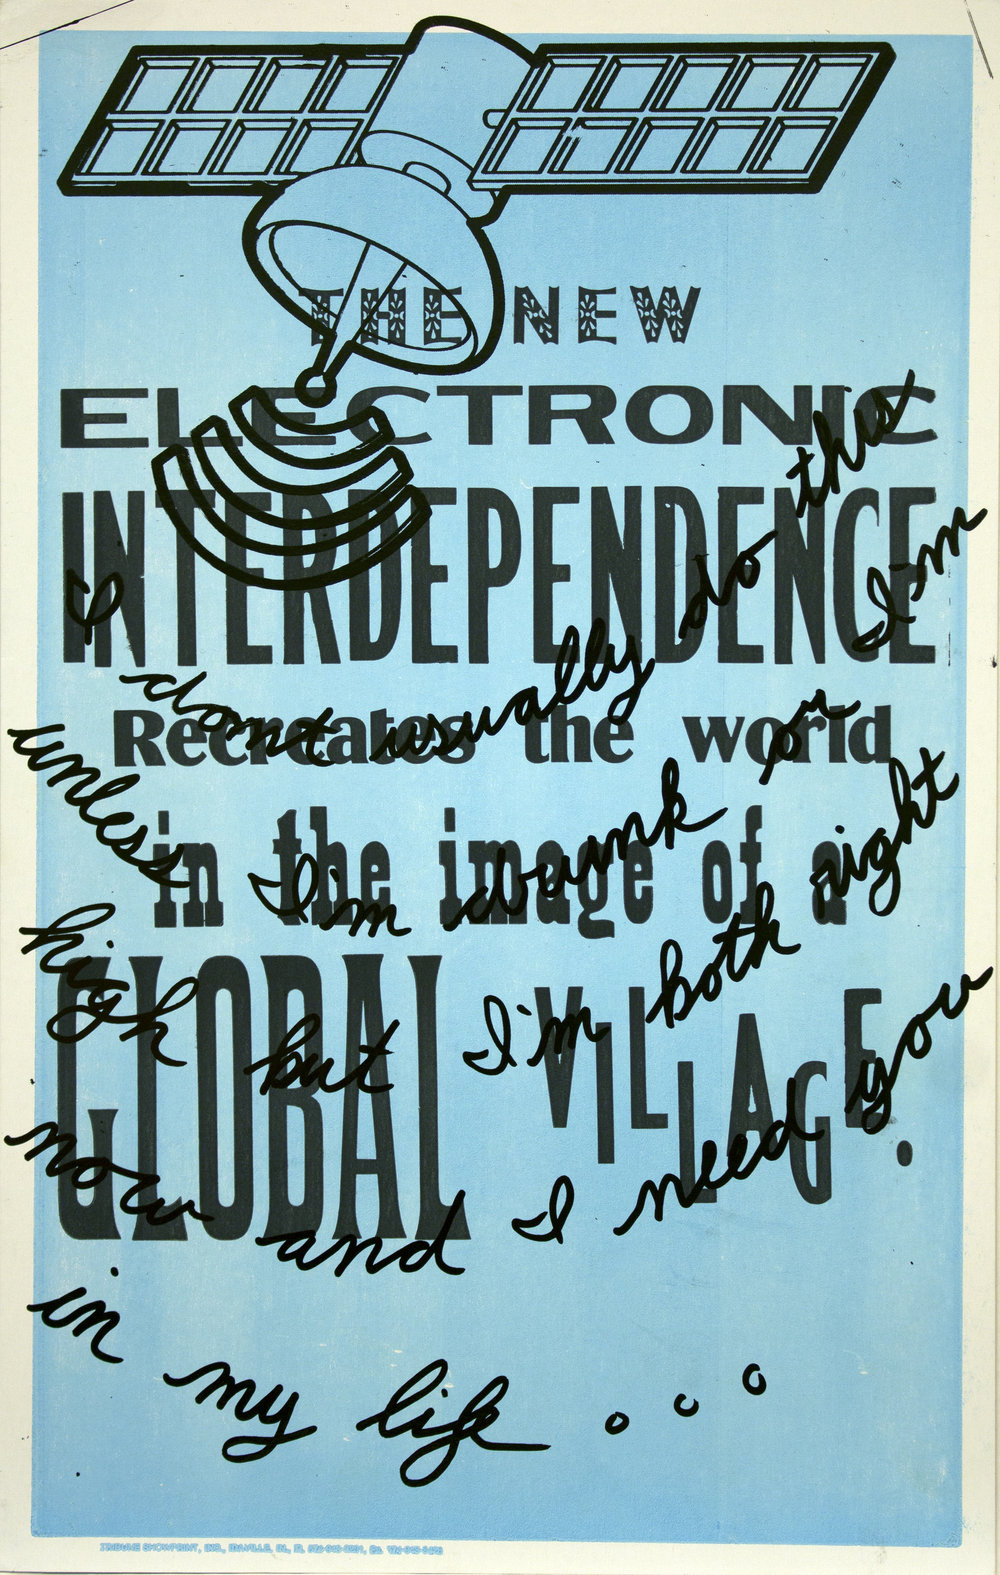 Christopher Michlig and Jan Tumlir,  Gucci Main is Streaming (THE NEW ELECTRONIC INTERDEPENDENCE Recreates the world in the image of a GLOBAL VILLAGE) , 2017. Silkscreen and letterpress on poster board, 14 x 22 inches